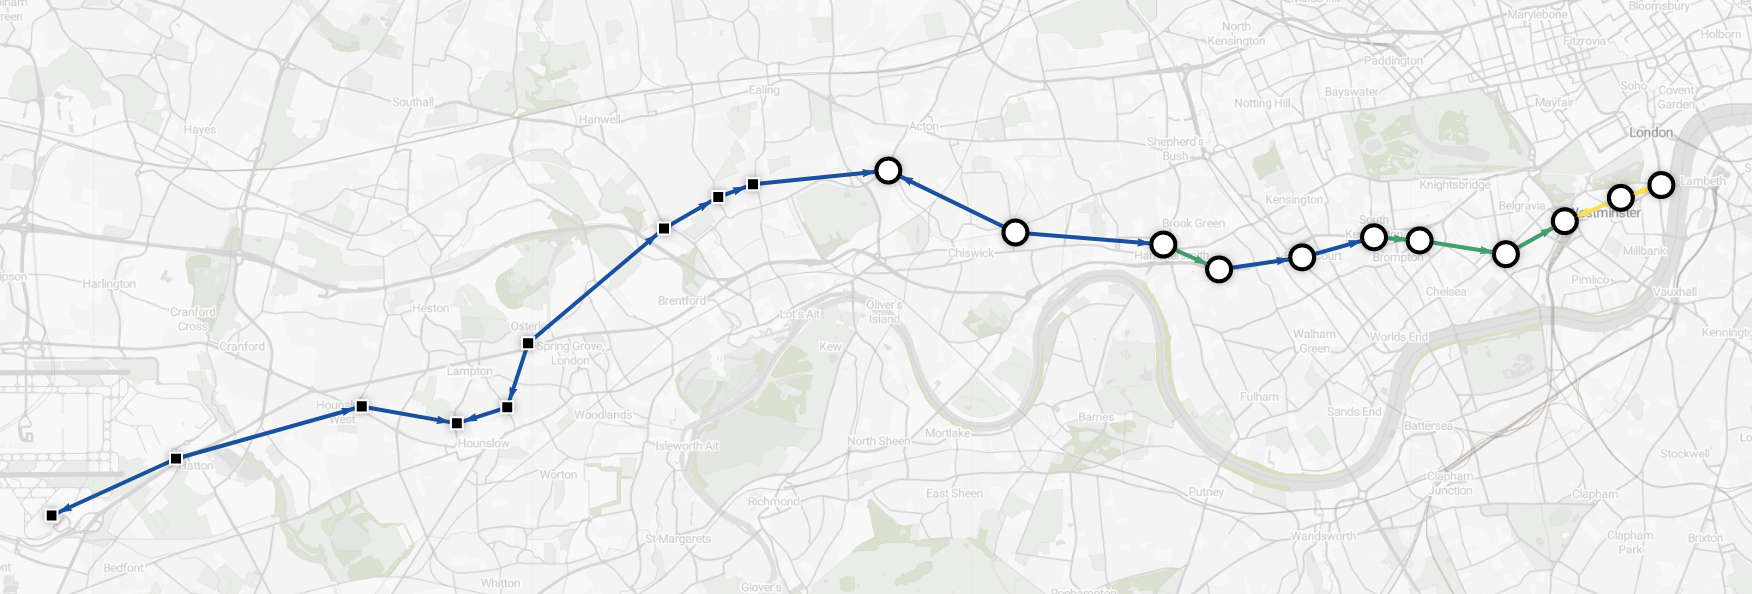 Data visualization - shortest route from Heathrow to Westminster